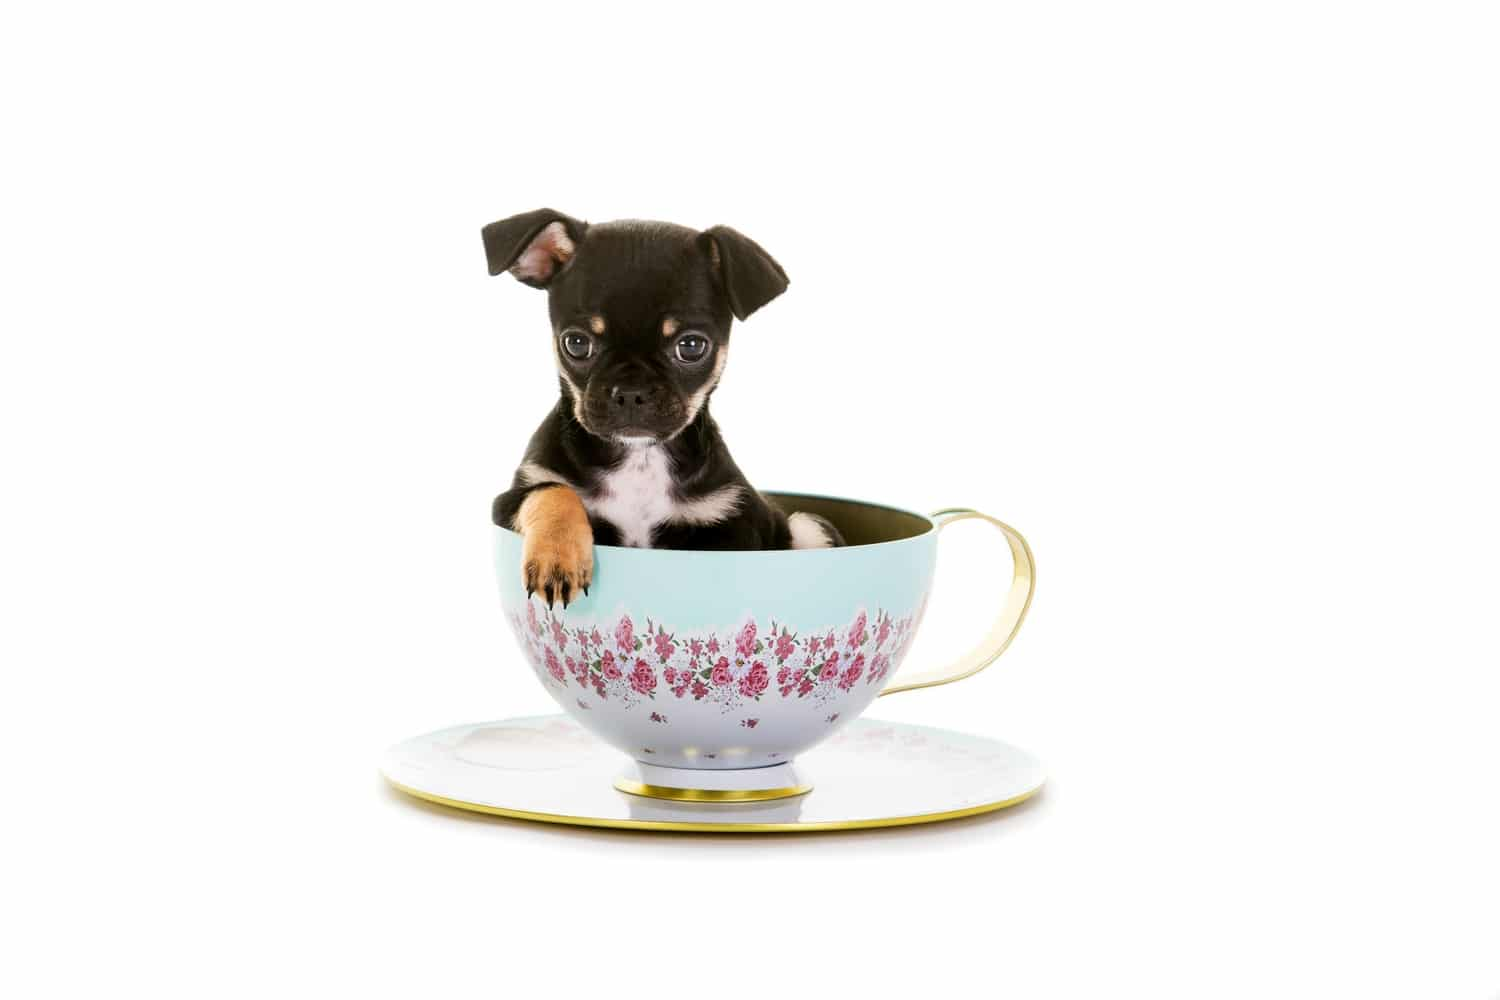 Chug dog sat in a cup and saucer